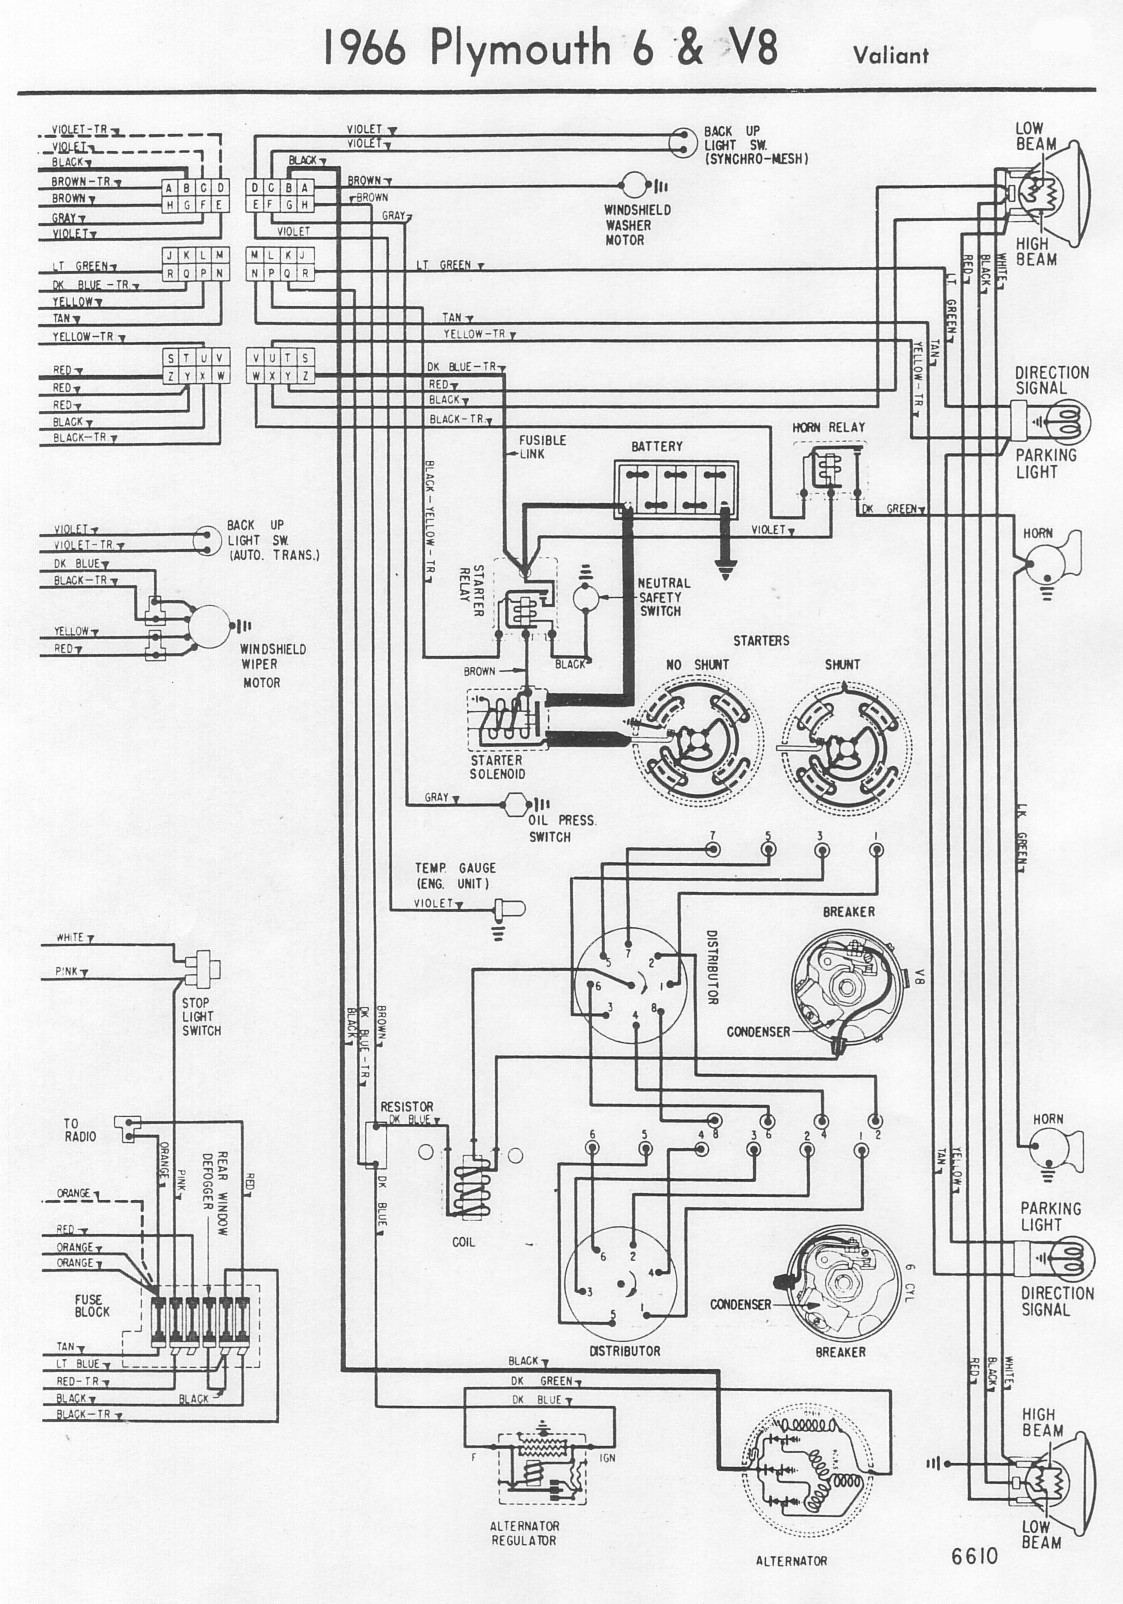 1966 Mopar Ignition Wiring Diagram Library Coil Ballast Resistor On 70 Dodge Dart 1973 Plymouth U2022 Rh Hammertimewebsite Co